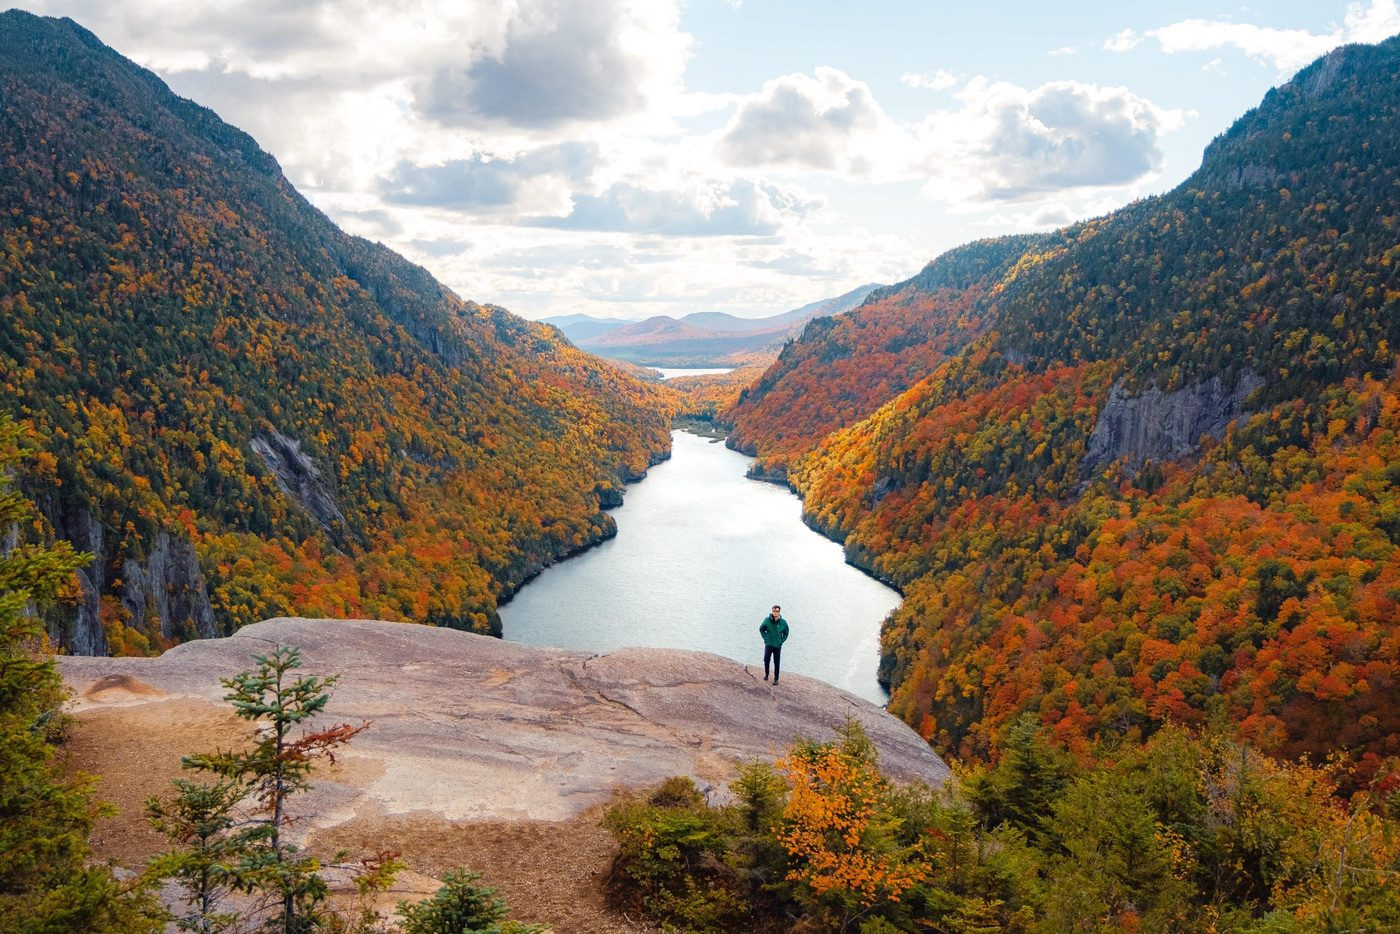 View from Indian Head Hike, Adirondacks in the fall